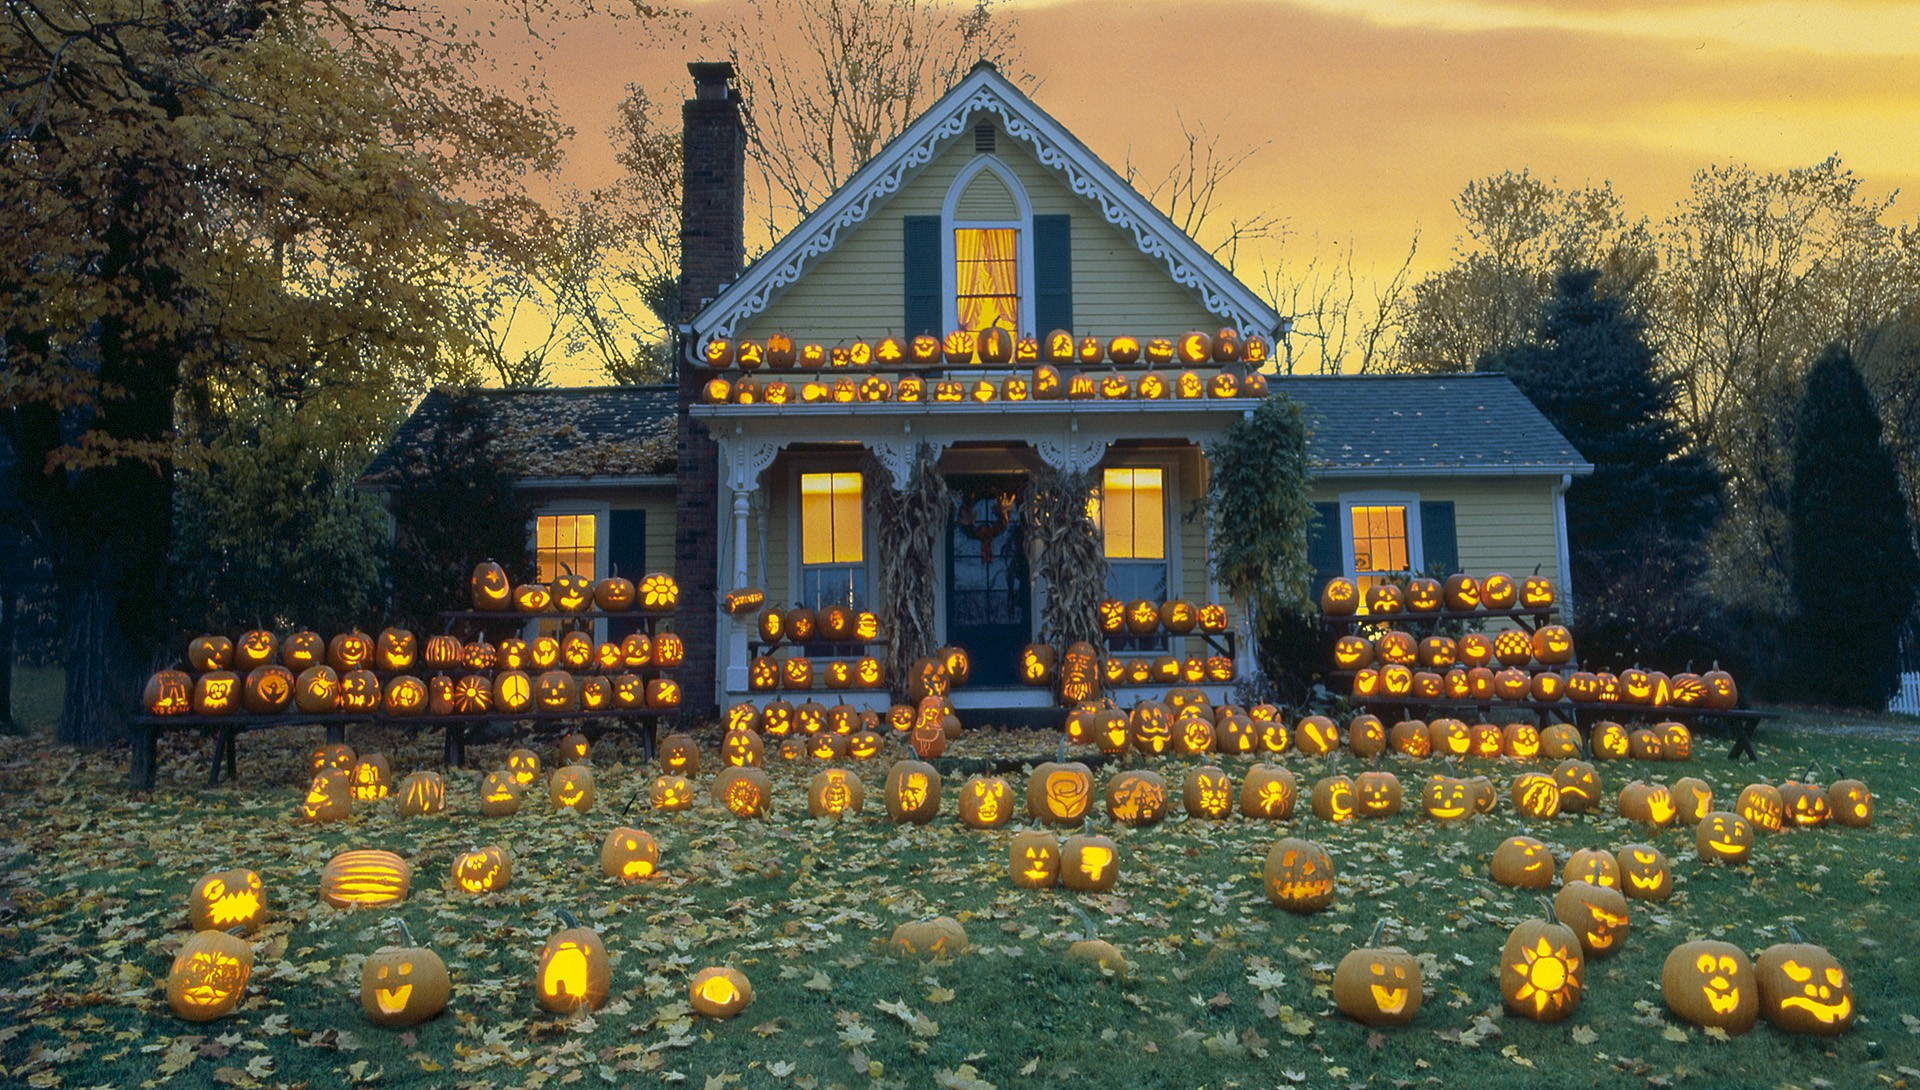 Fall Scarecrow Wallpaper Halloween House Hd Wallpaper Background Image